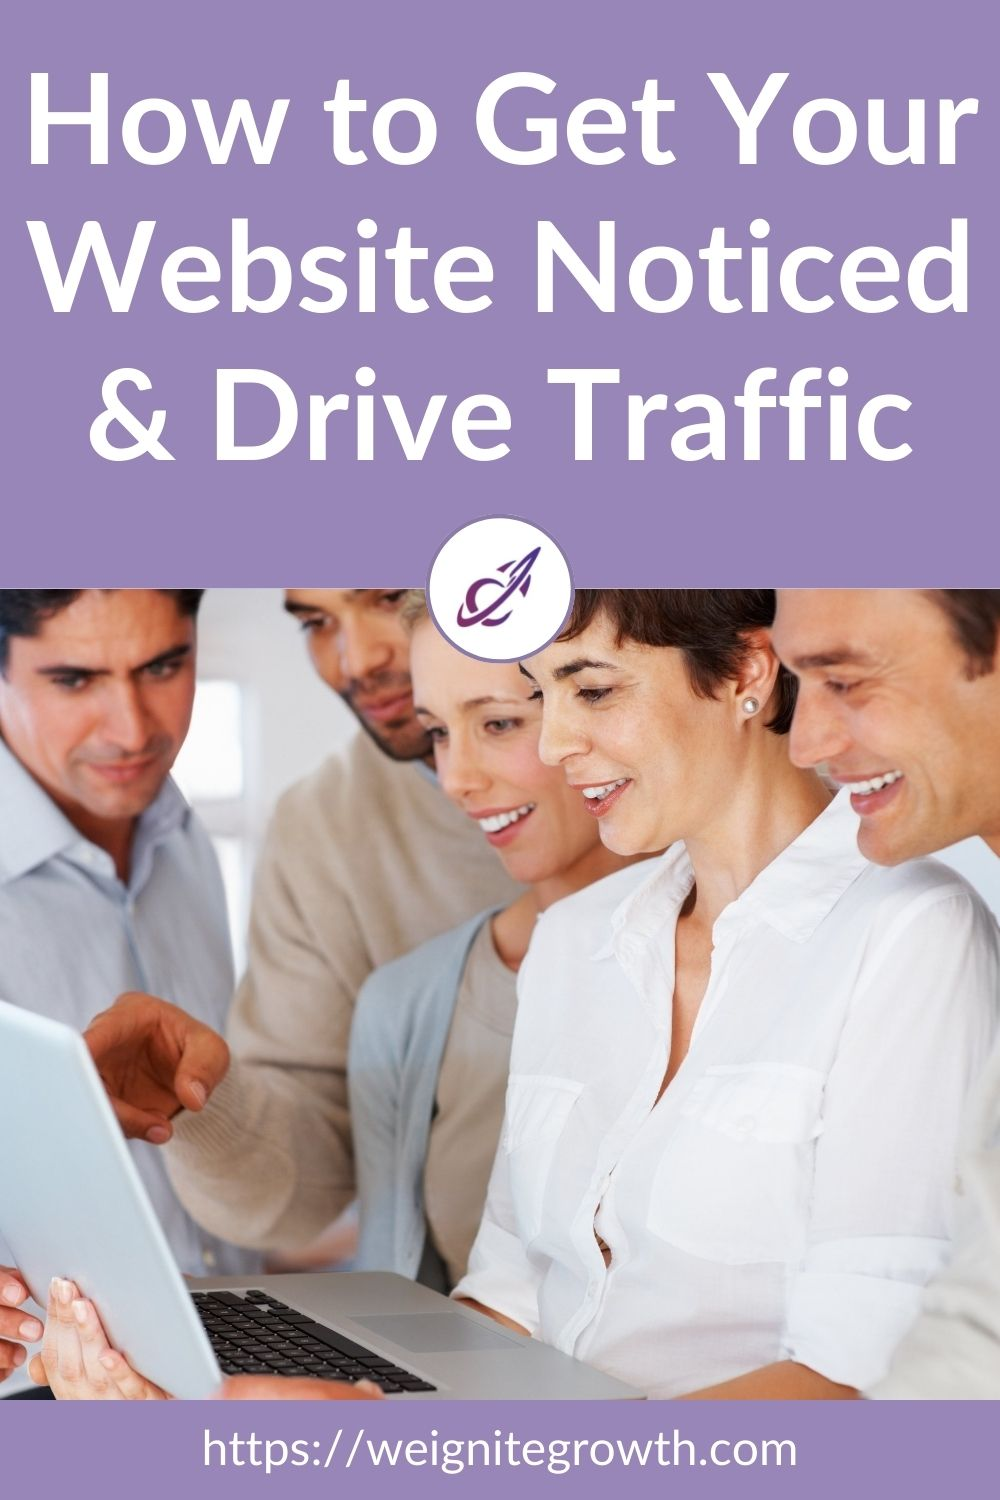 How to Get Your Website Noticed & Drive Traffic Pinterest